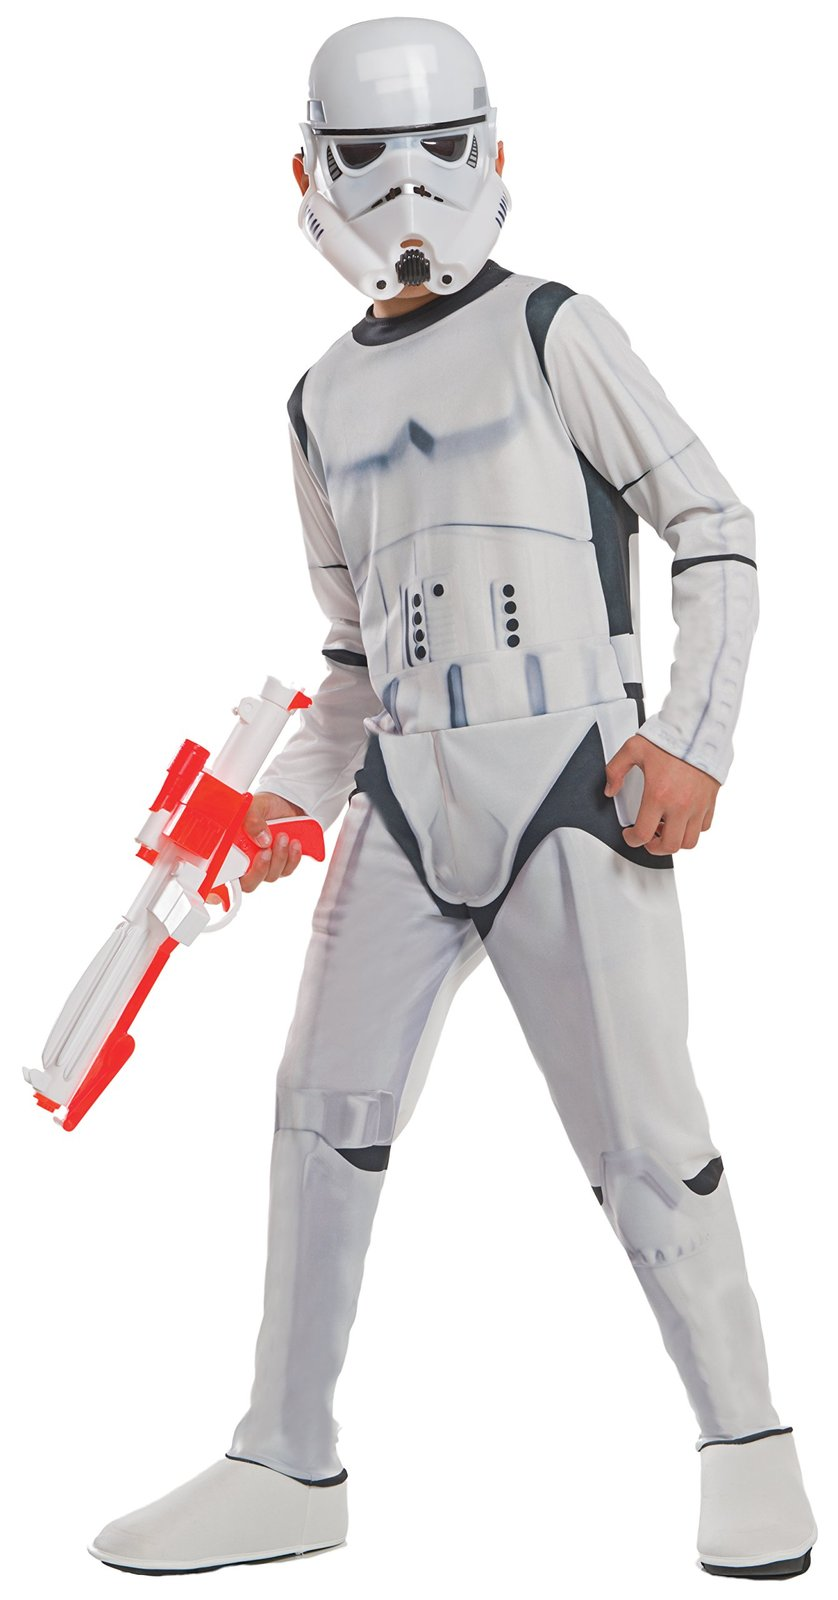 Image 0 of Rubie's Costume Star Wars Classic Stormtrooper Child Costume